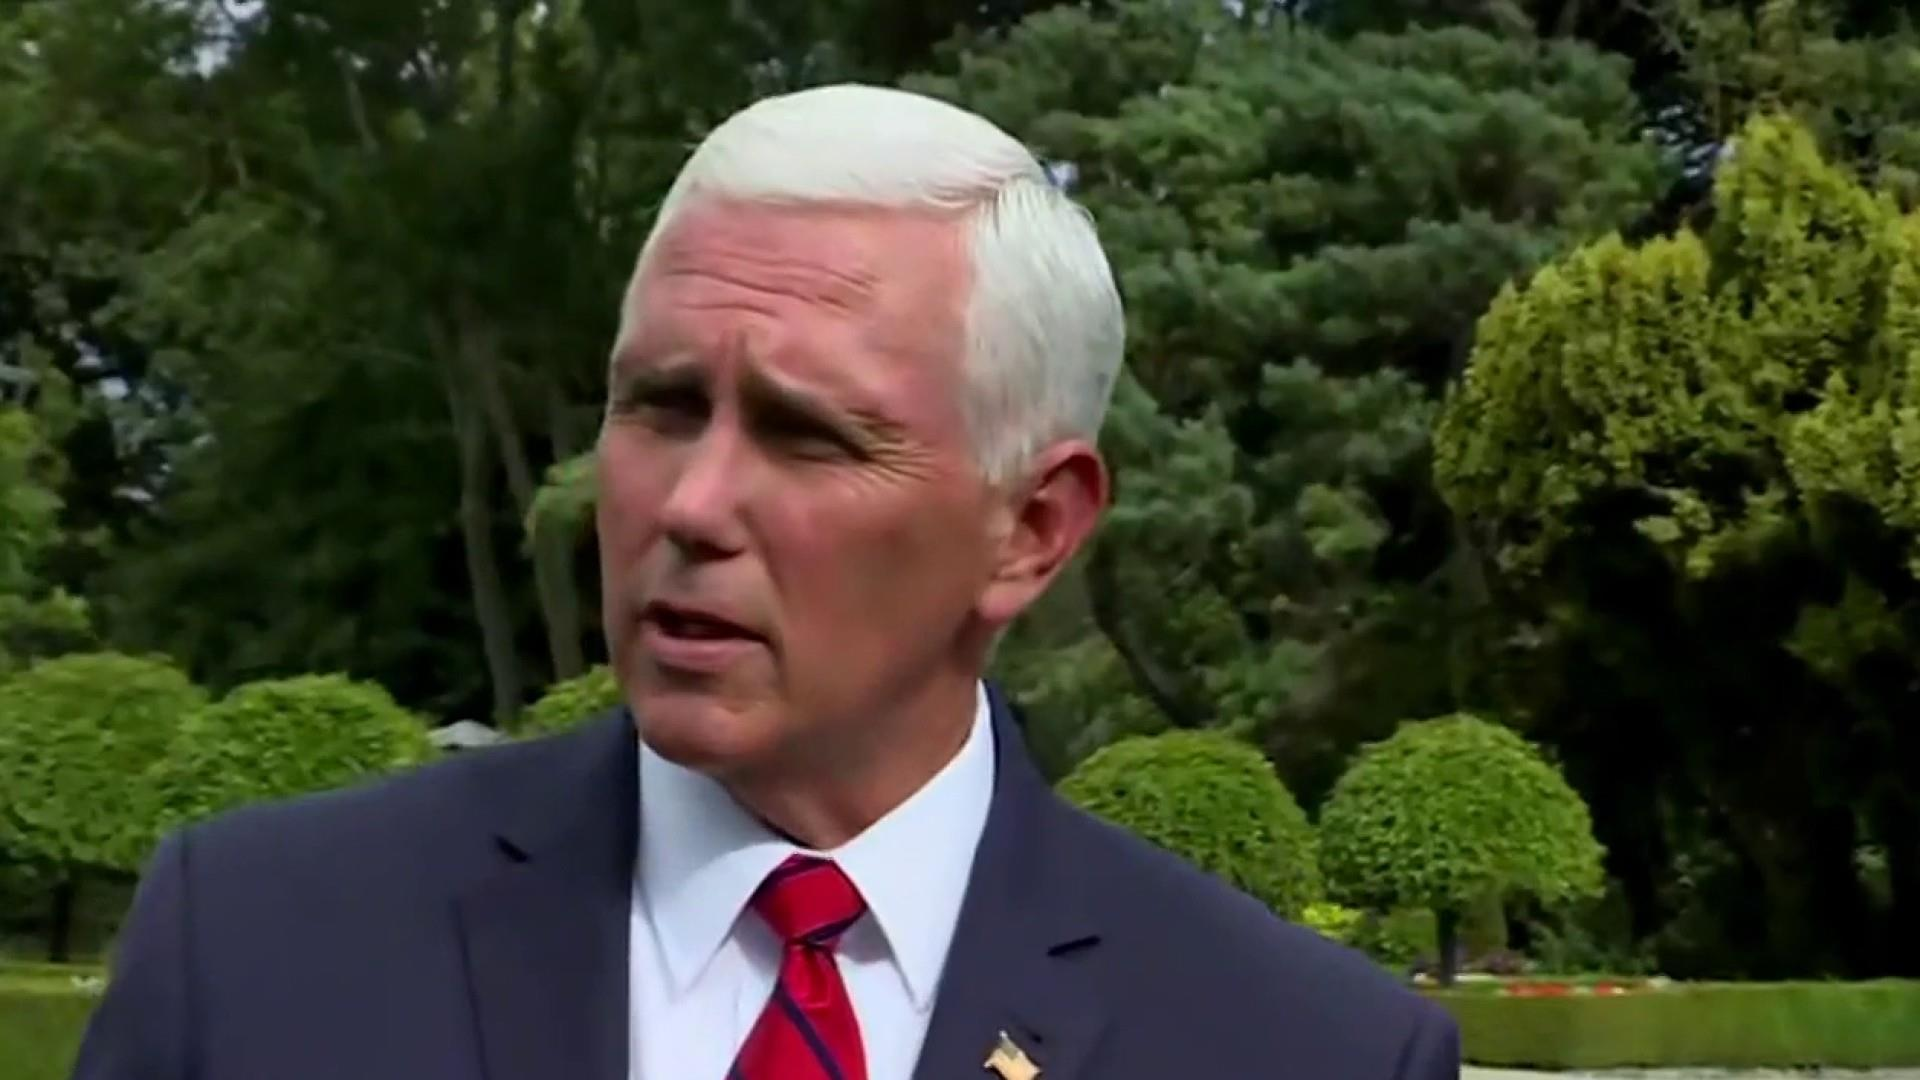 VP Pence defends decision to stay at President Trump's Ireland hotel